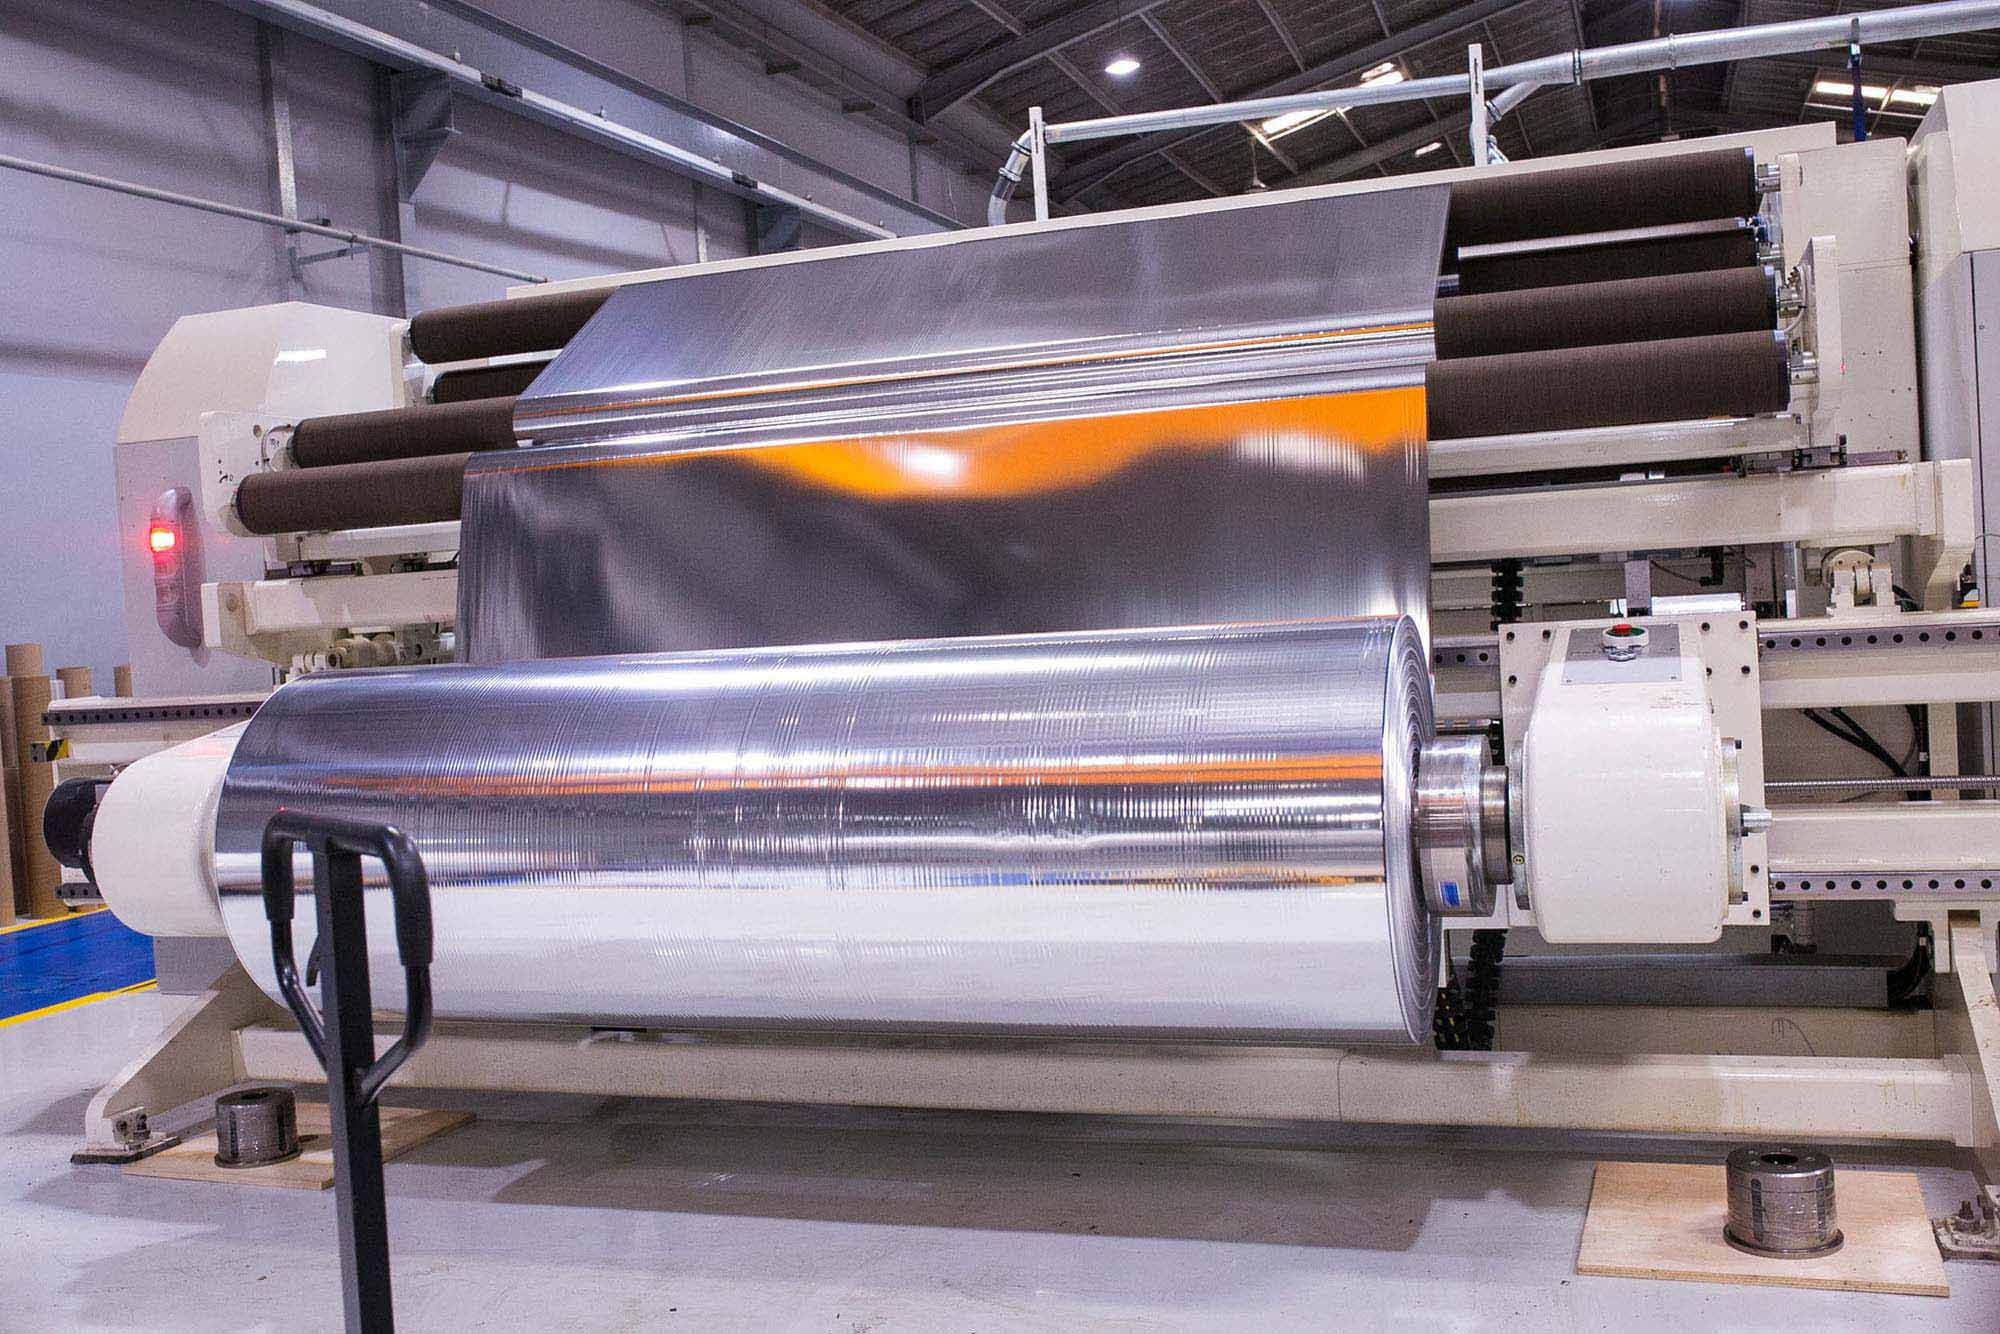 Tempo Paper Pulp and Packaging Ltd Offers High Barrier Metallised Film